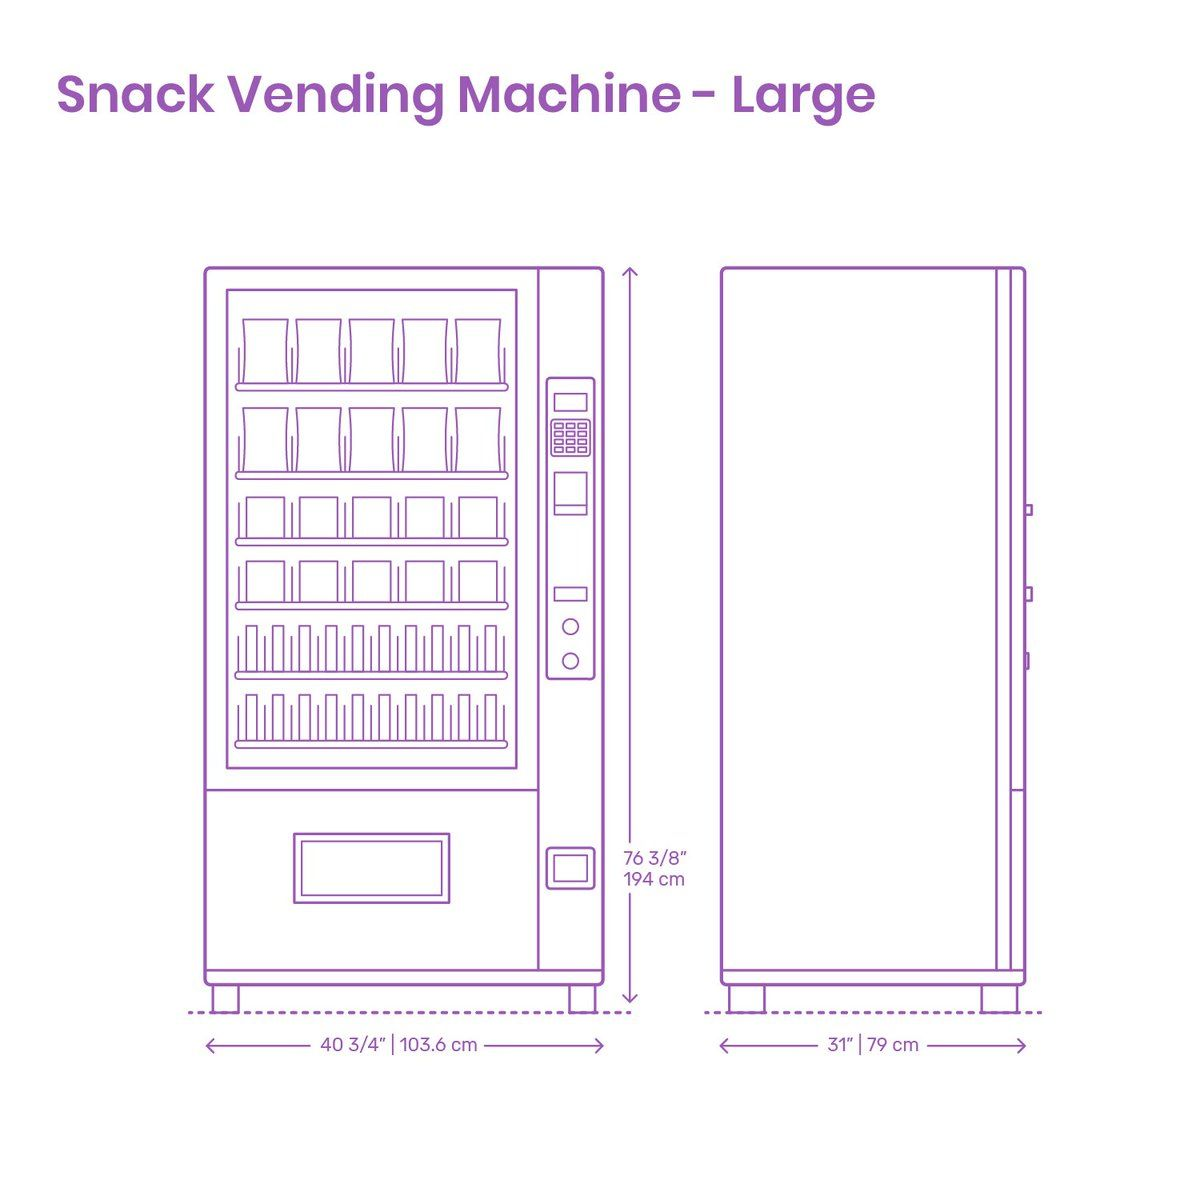 Pin By Stella On Icons Sketch Book Design Vending Machine Snacks